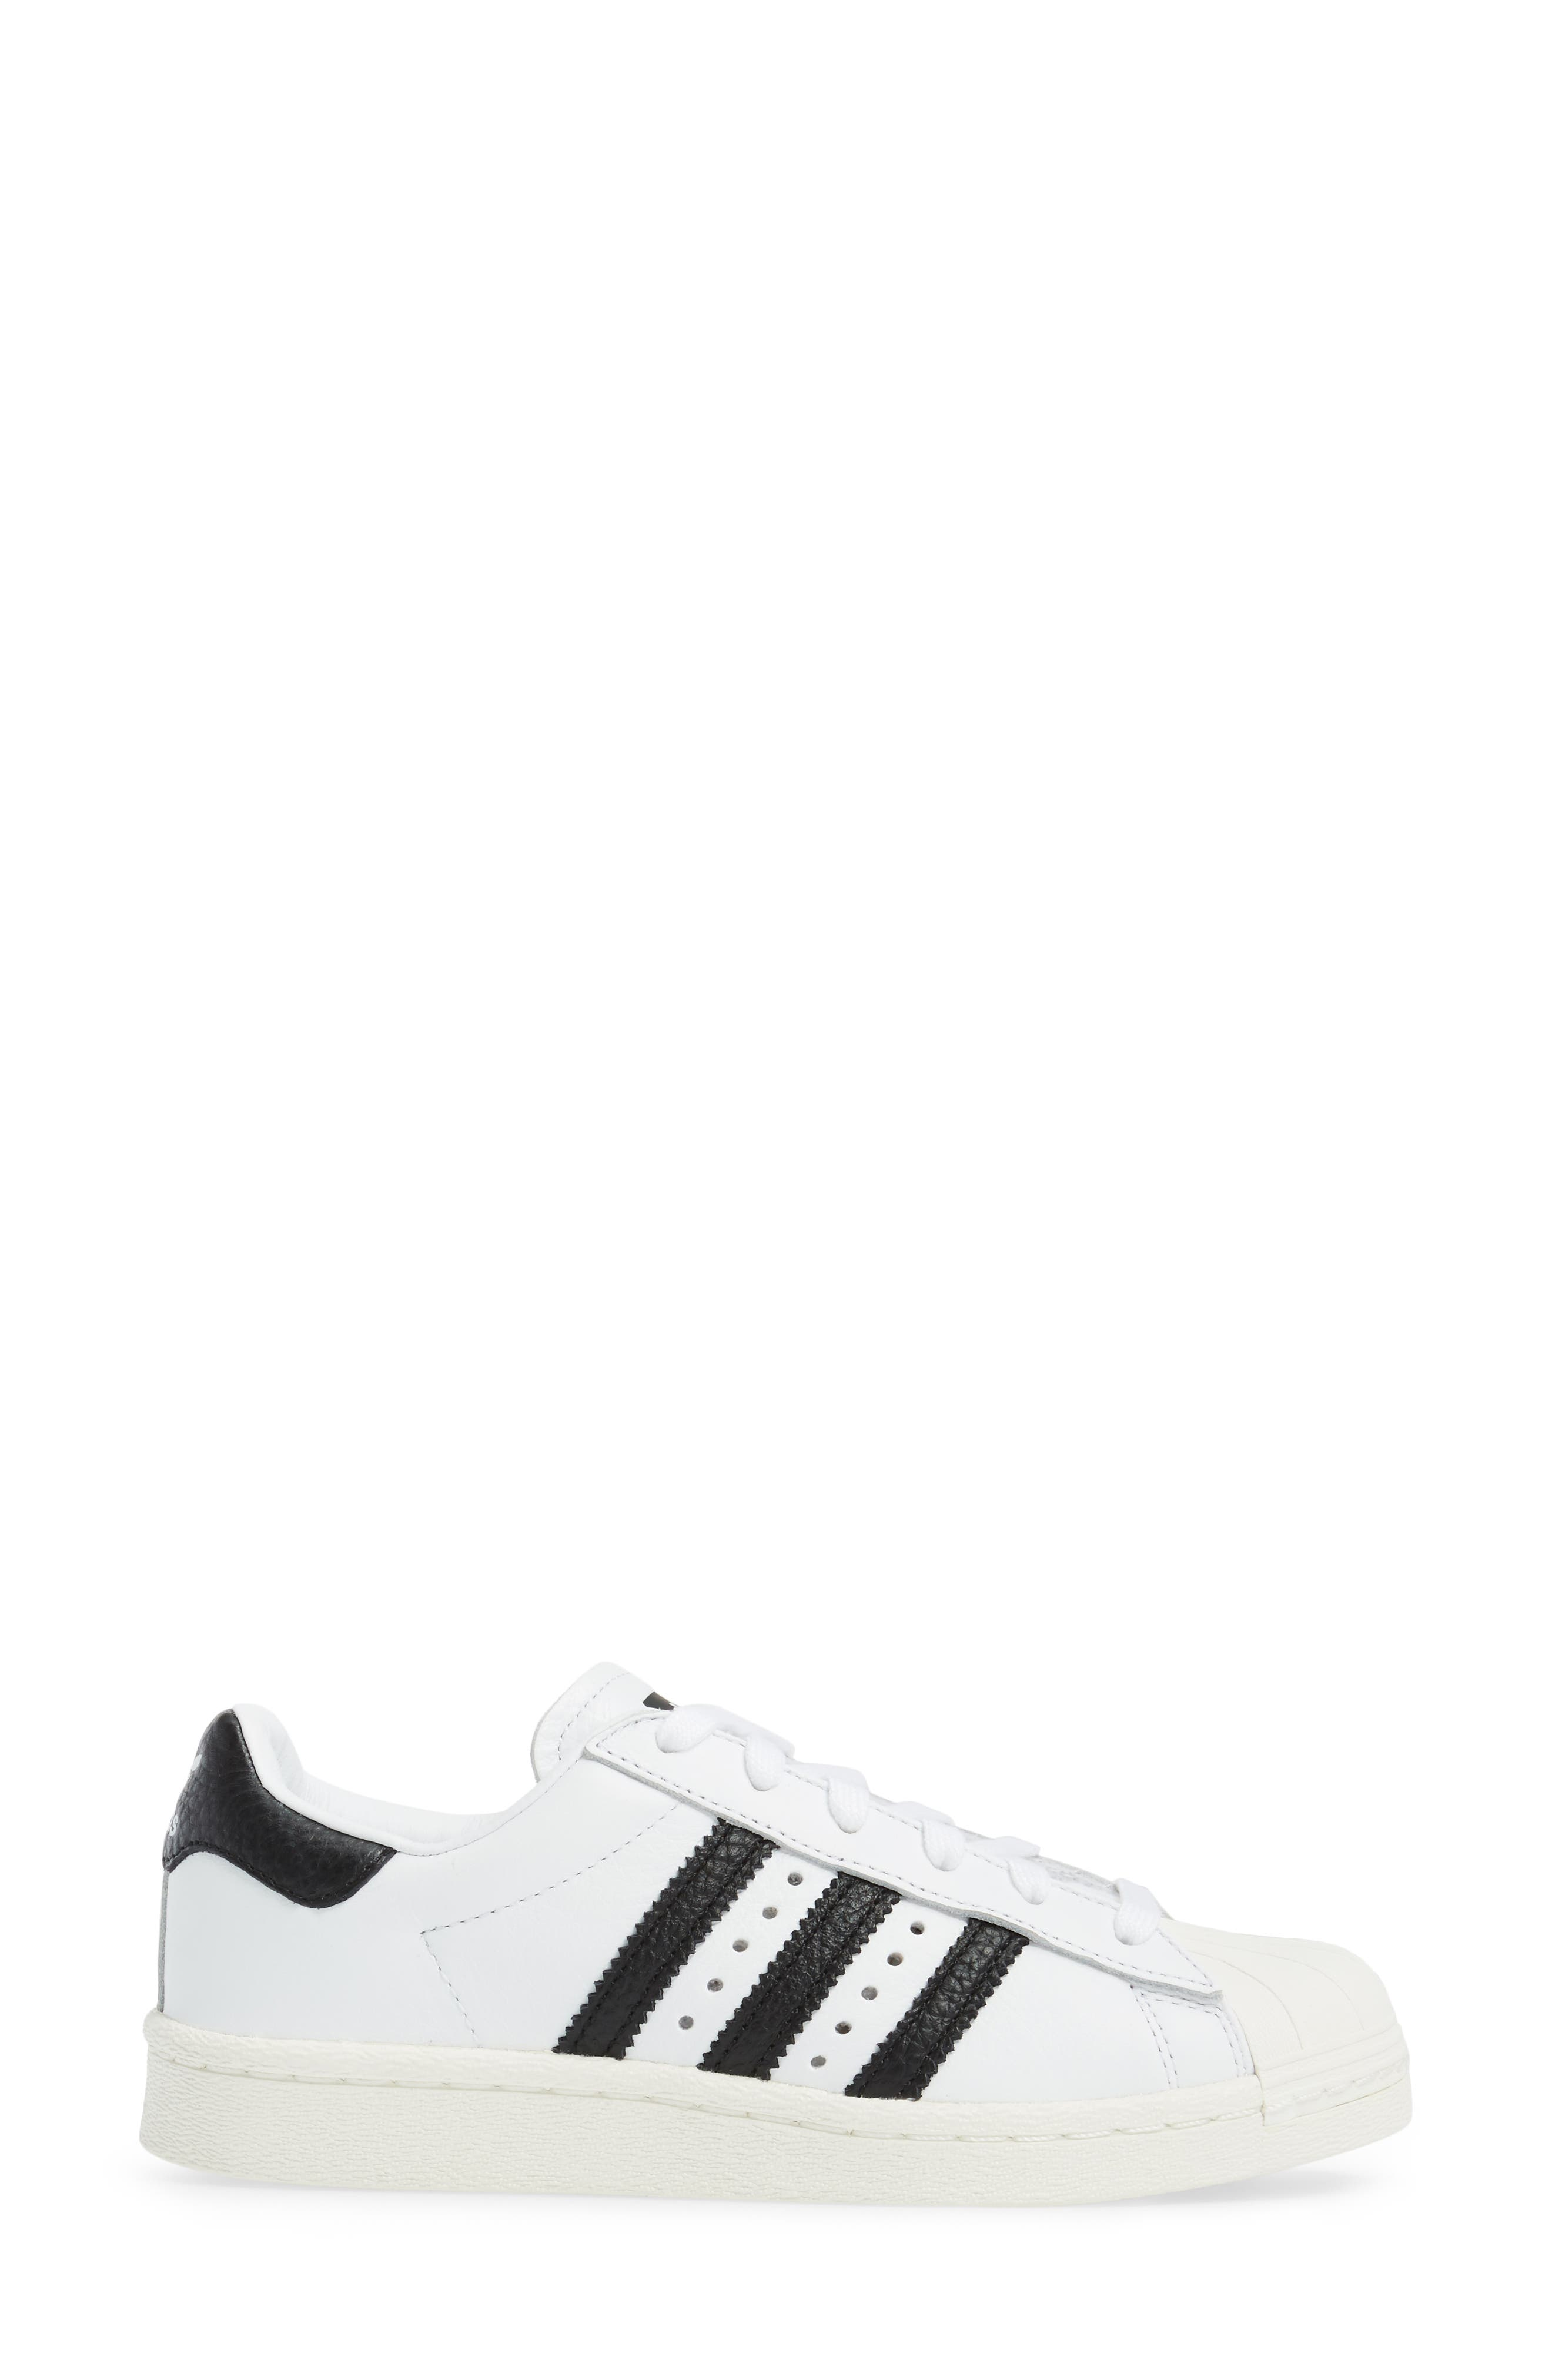 Alternate Image 3  - adidas Superstar Boost Sneaker (Women)